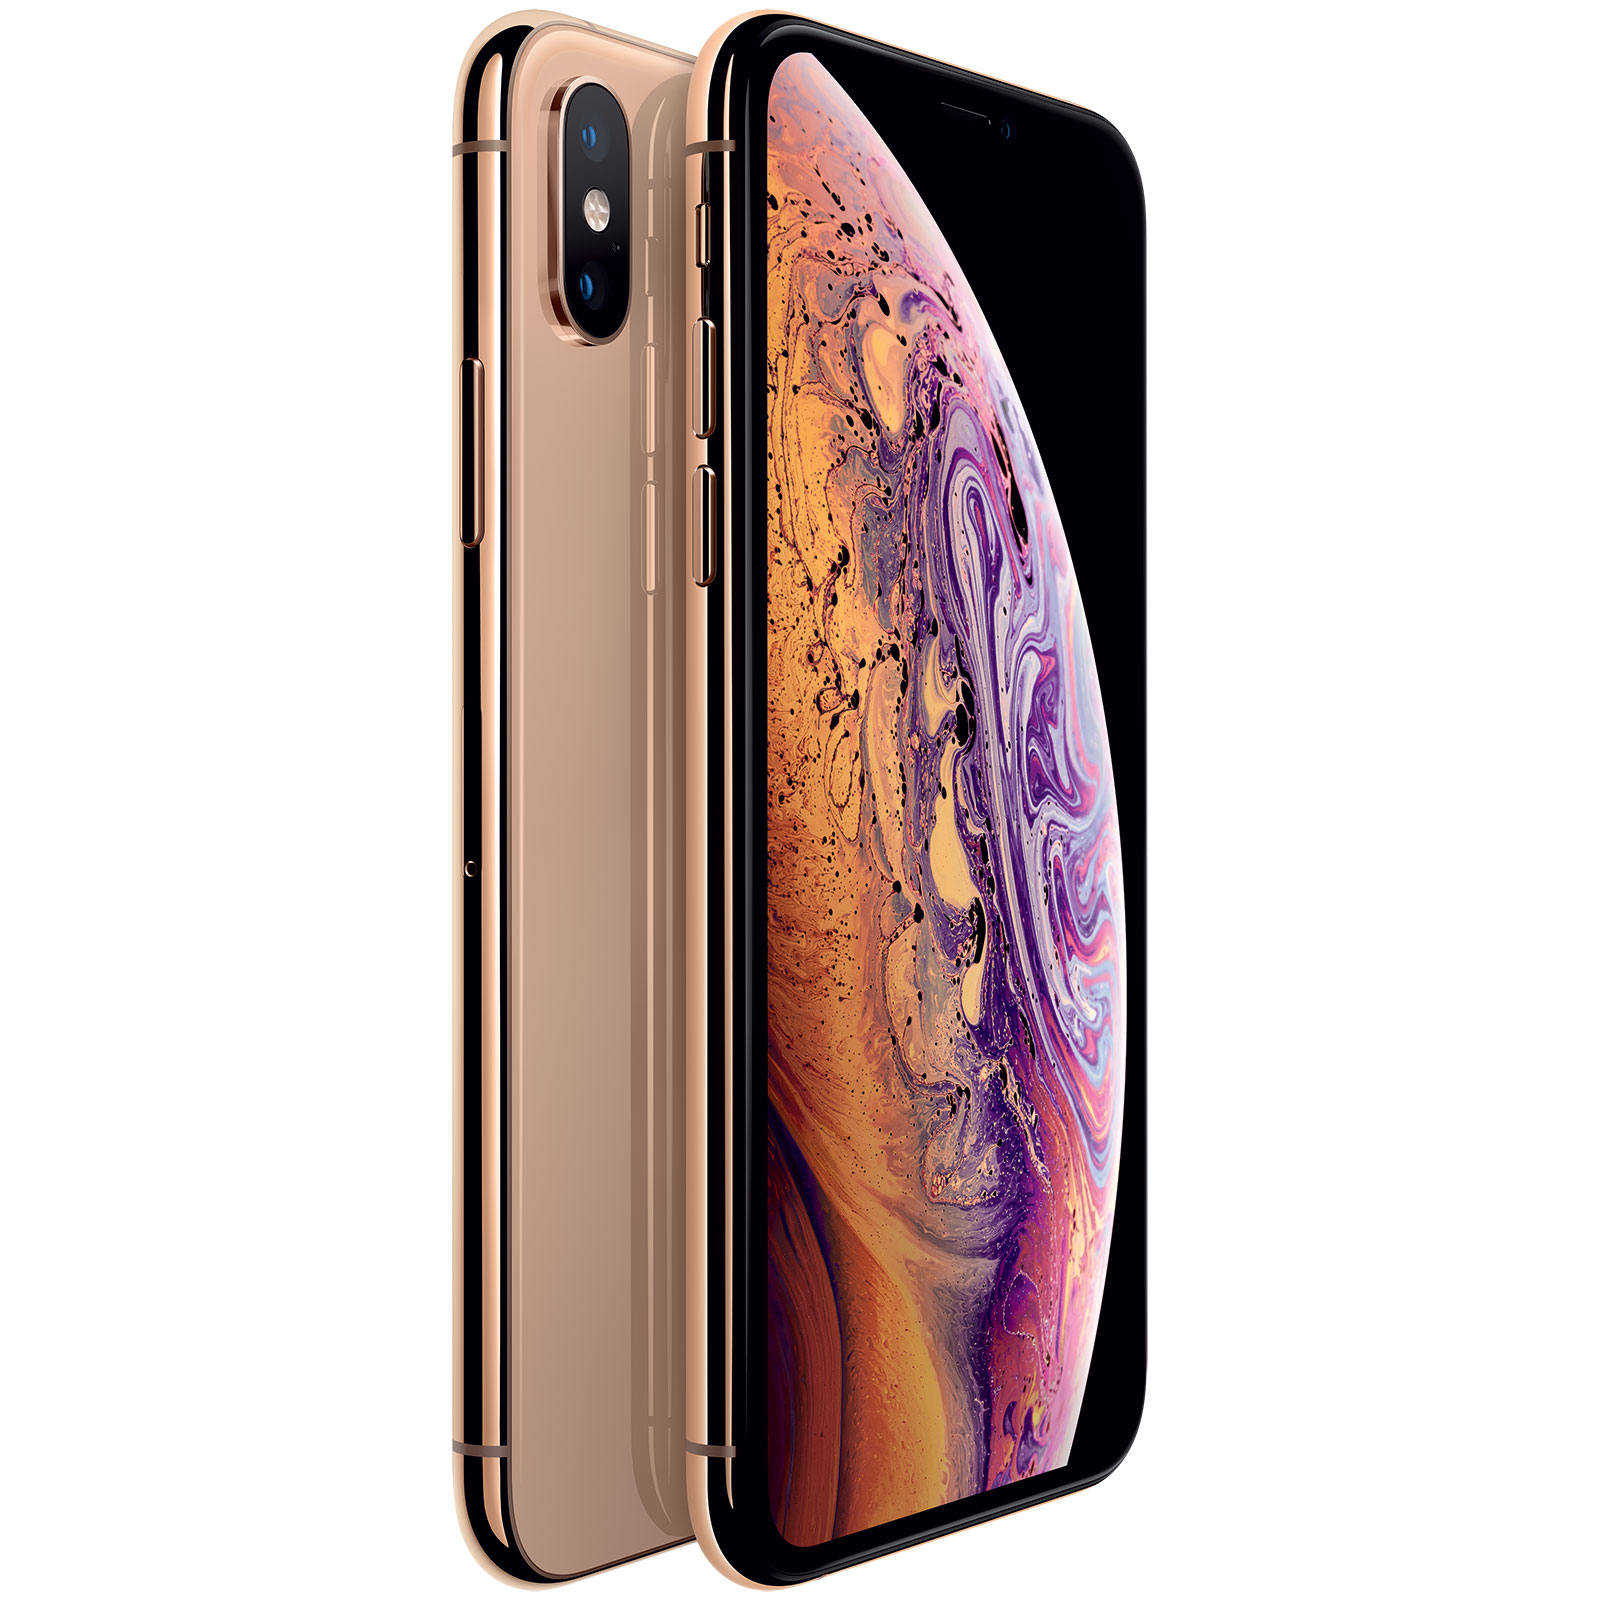 "Mobile & smartphone Apple iPhone Xs 256 Go Or Smartphone 4G-LTE Advanced IP68 Dual SIM - Apple A12 Bionic Hexa-Core - RAM 4 Go - Ecran Super Retina 5.8"" 1125 x 2436 - 256 Go - NFC/Bluetooth 5.0 - iOS 12"